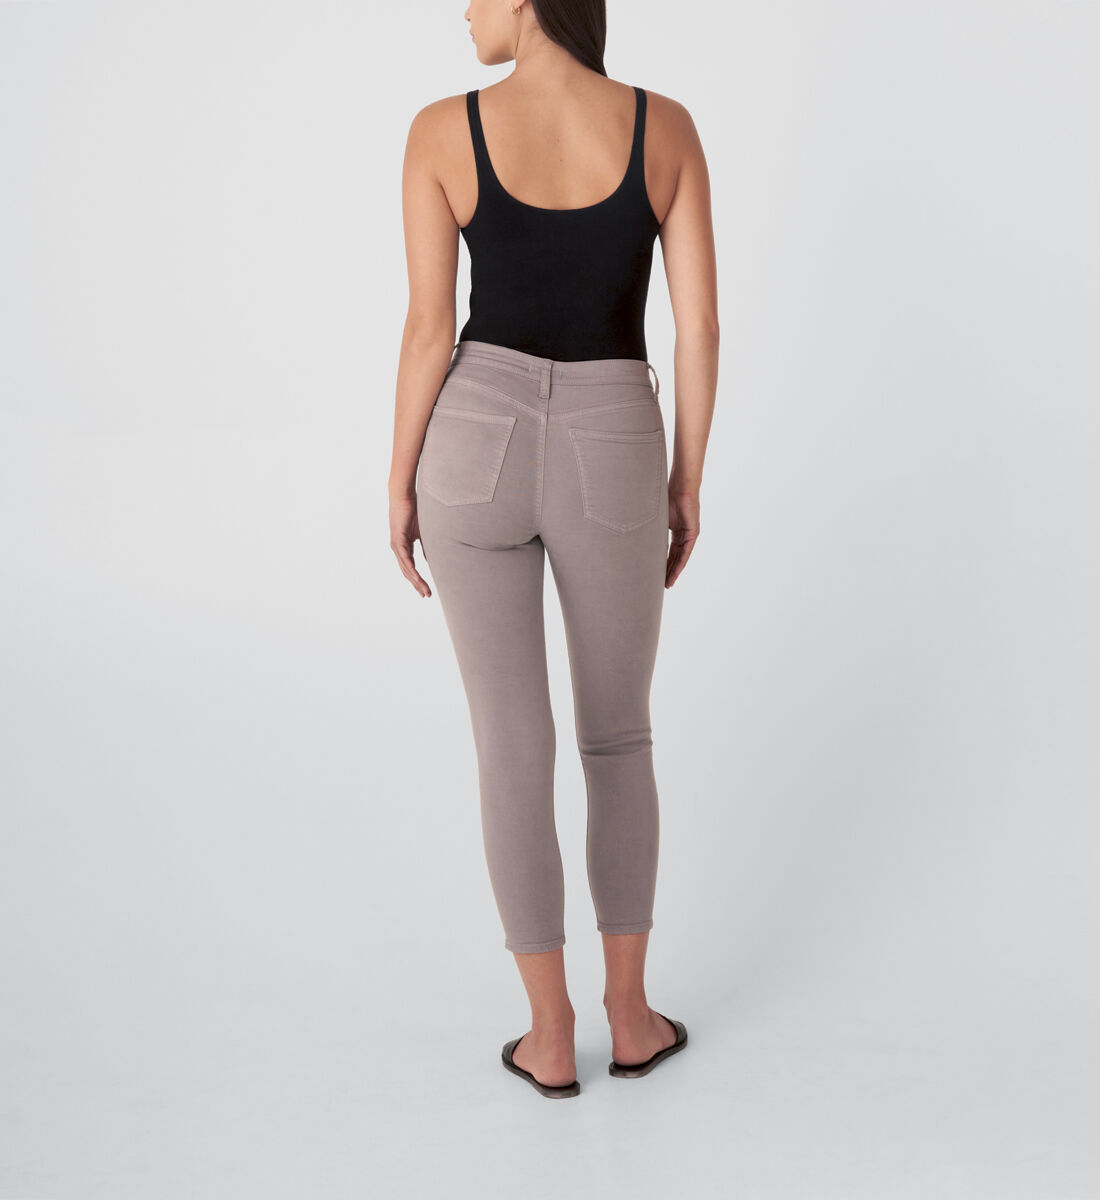 Most Wanted Mid Rise Skinny Jeans,Grey Back